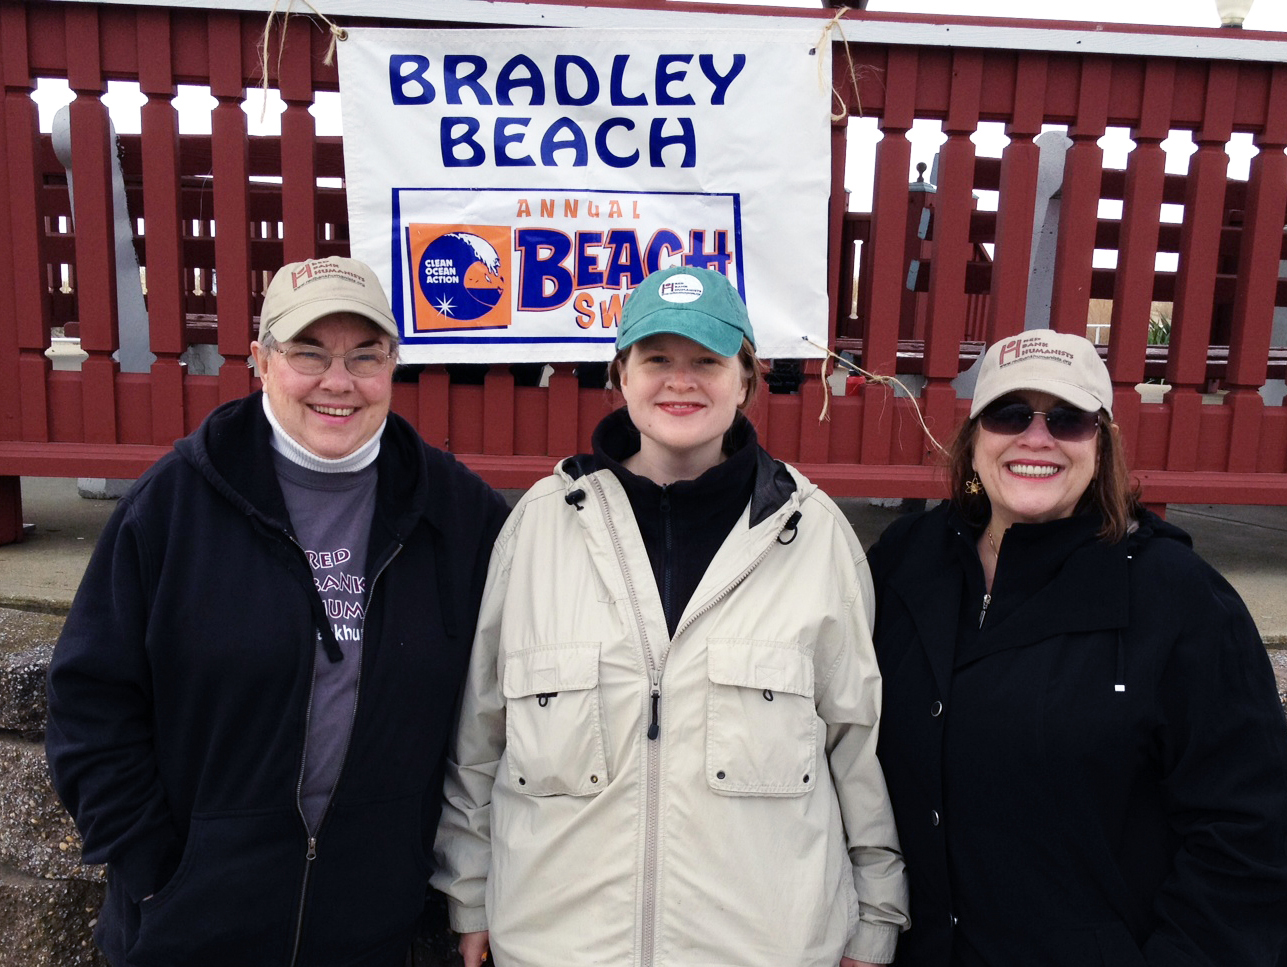 2012_04_21_RBH_Apr2012_Beach_Sweep_02.jpg